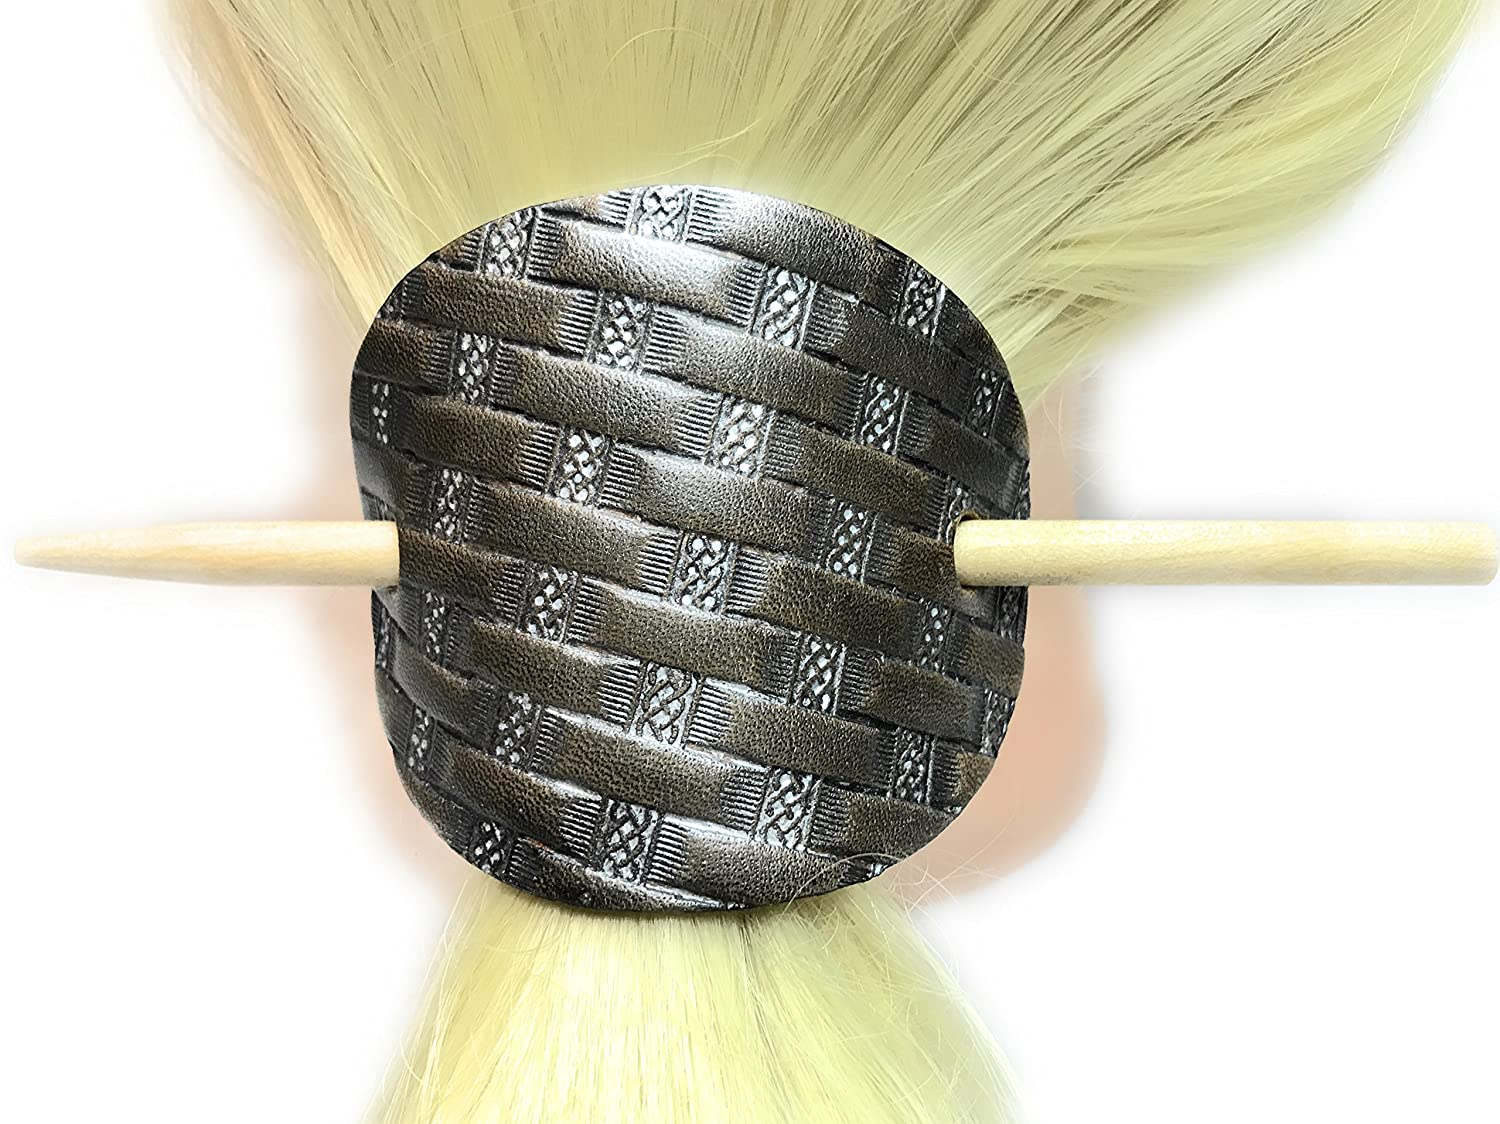 Small Hand-Tooled Celtic Basket Weave Leather Stick Barrette Hair Accessory - DeluxeAdultCostumes.com